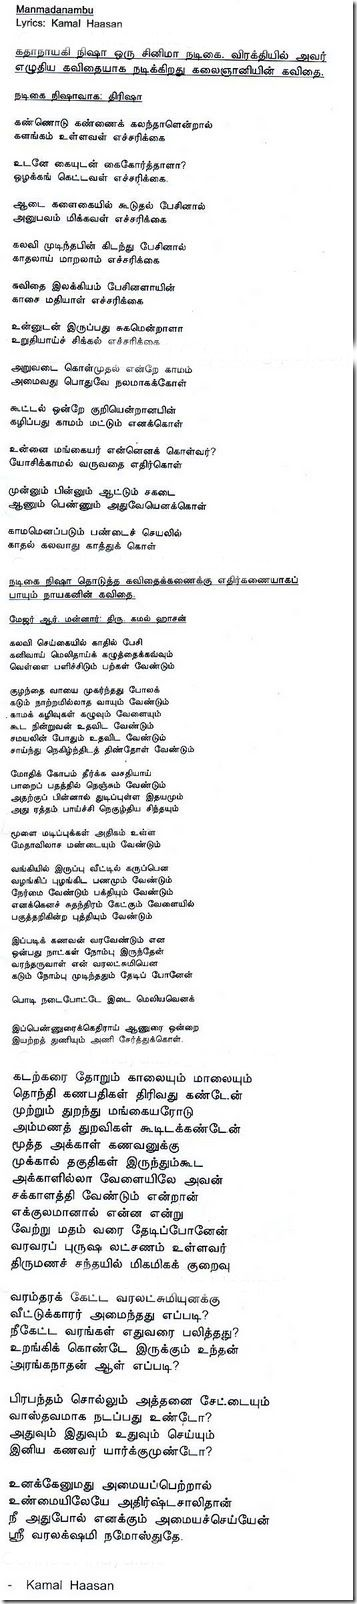 manmadhan_ambu Poem exchange. Men's warning to another and a woman's prayer to goddess.  translation wud be  http://www.ramyuva.com/voice-of-the-winds/kamal-kavidhai-lyrics-translation-in-english/